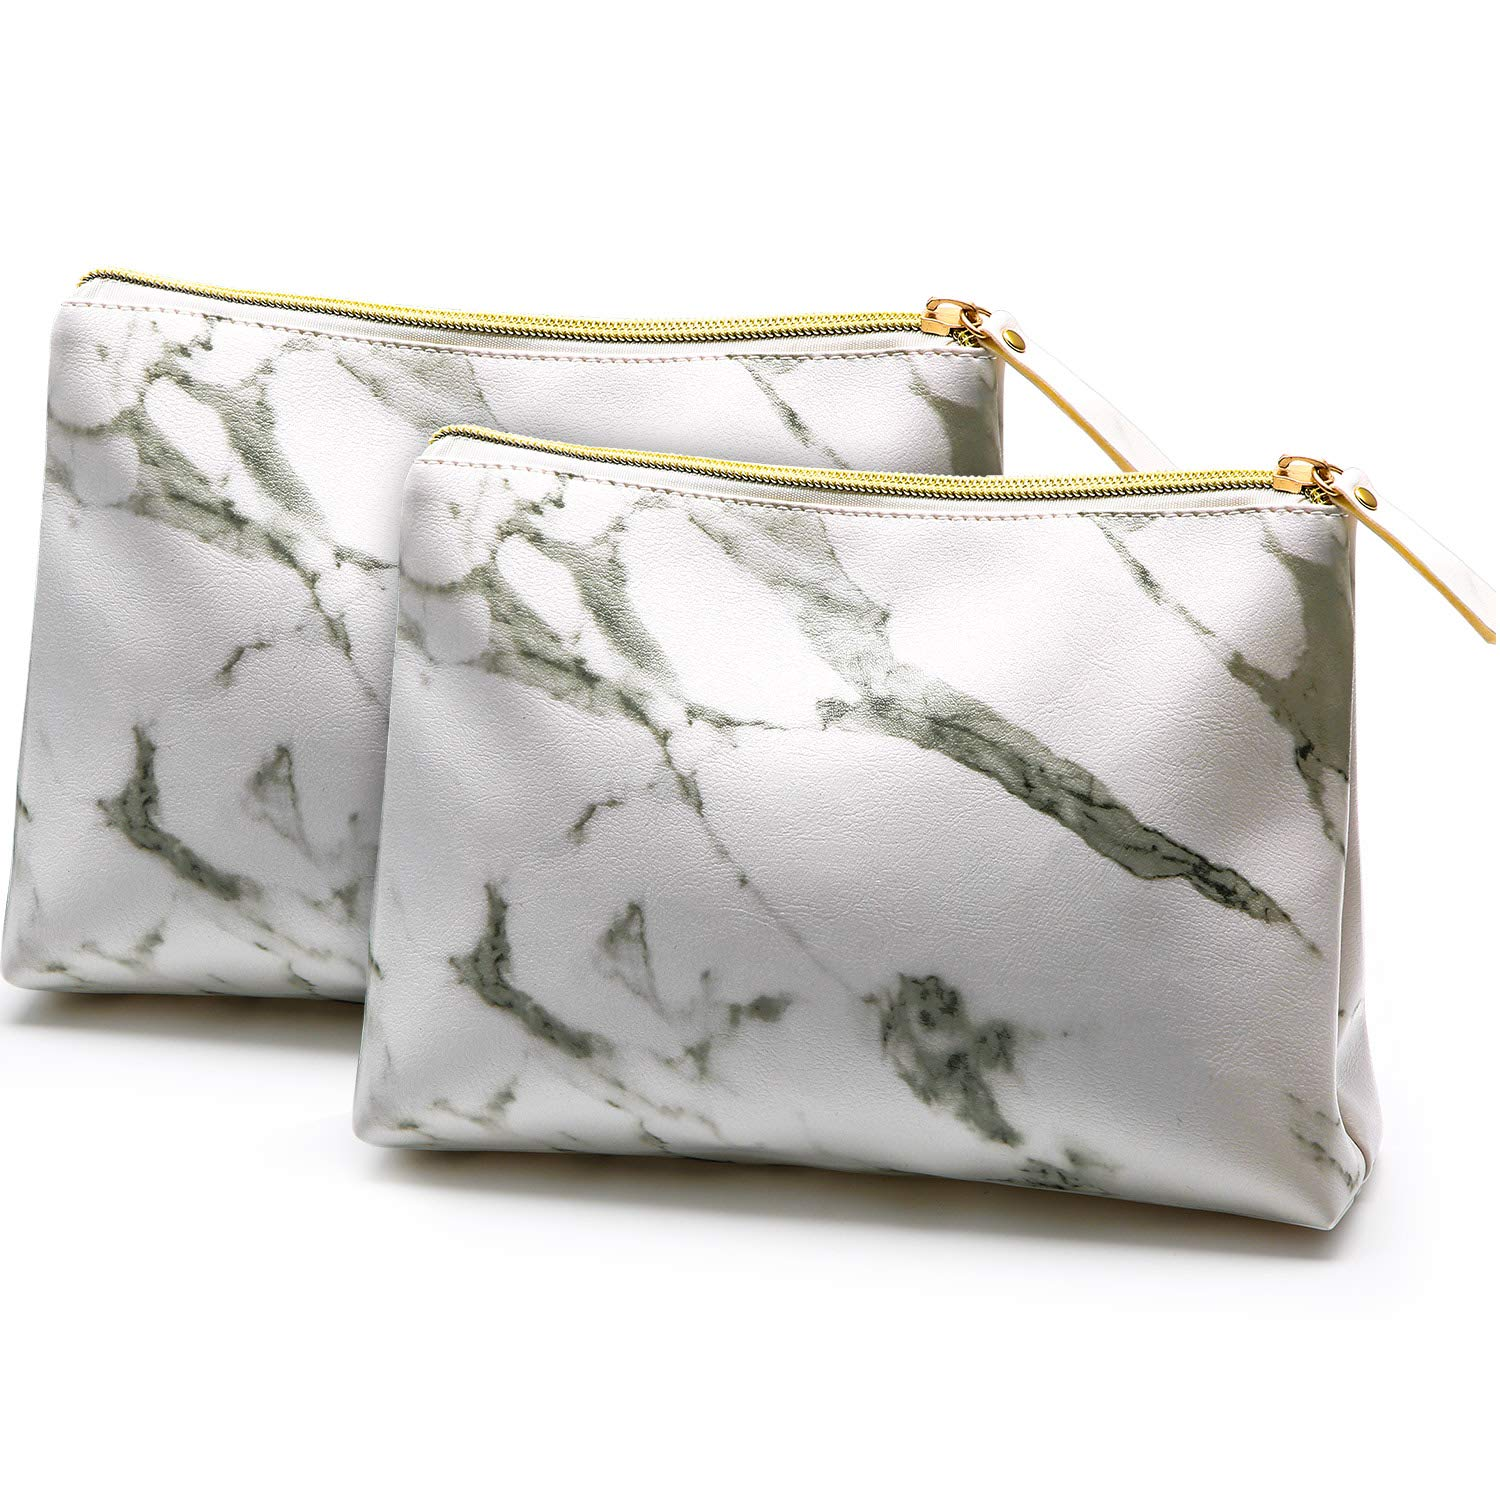 2 Pieces Marble Makeup Bags Portable Zipper Cosmetic Bags Toiletry Travel Storage Pouches for Traveling Storage (White)